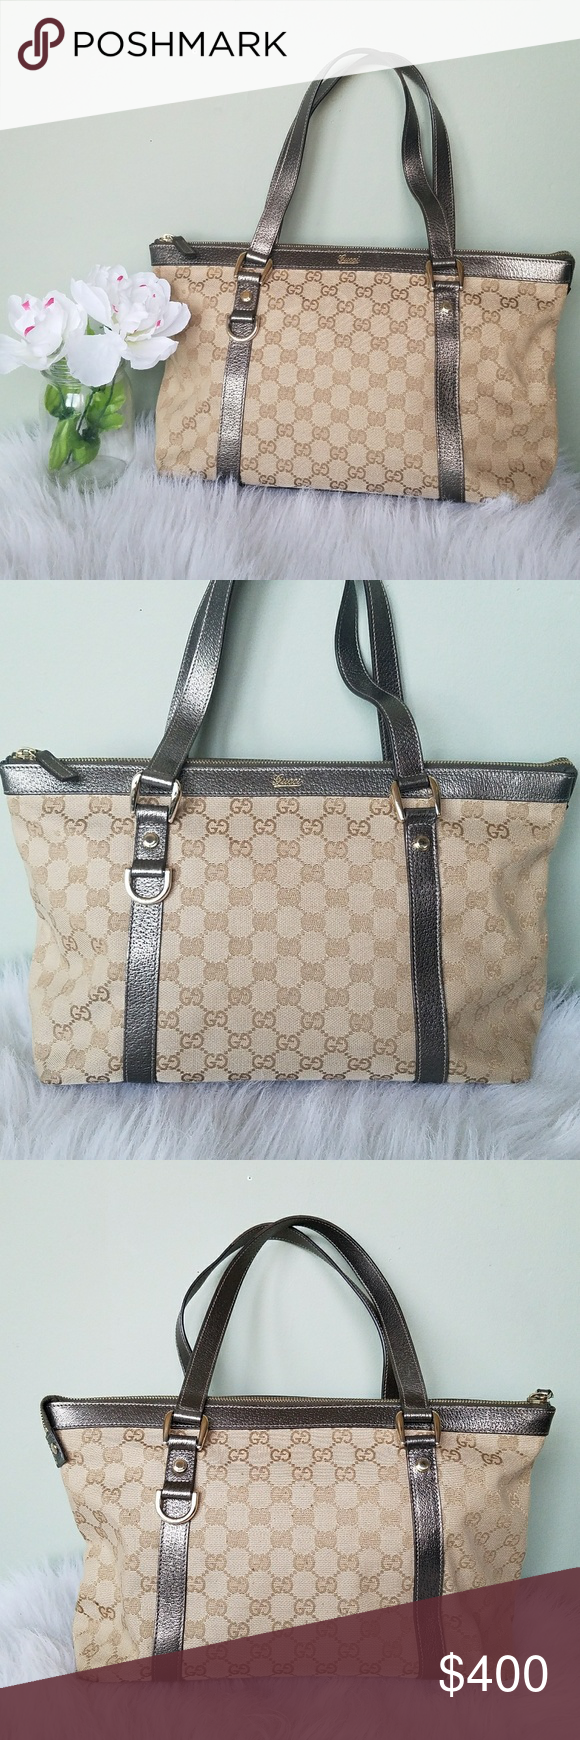 7ed1c64f376 Gucci Monogram Medium Abbey Tote Metallic Authentic Gucci. GUCCI Monogram  Medium Abbey Tote. Crafted